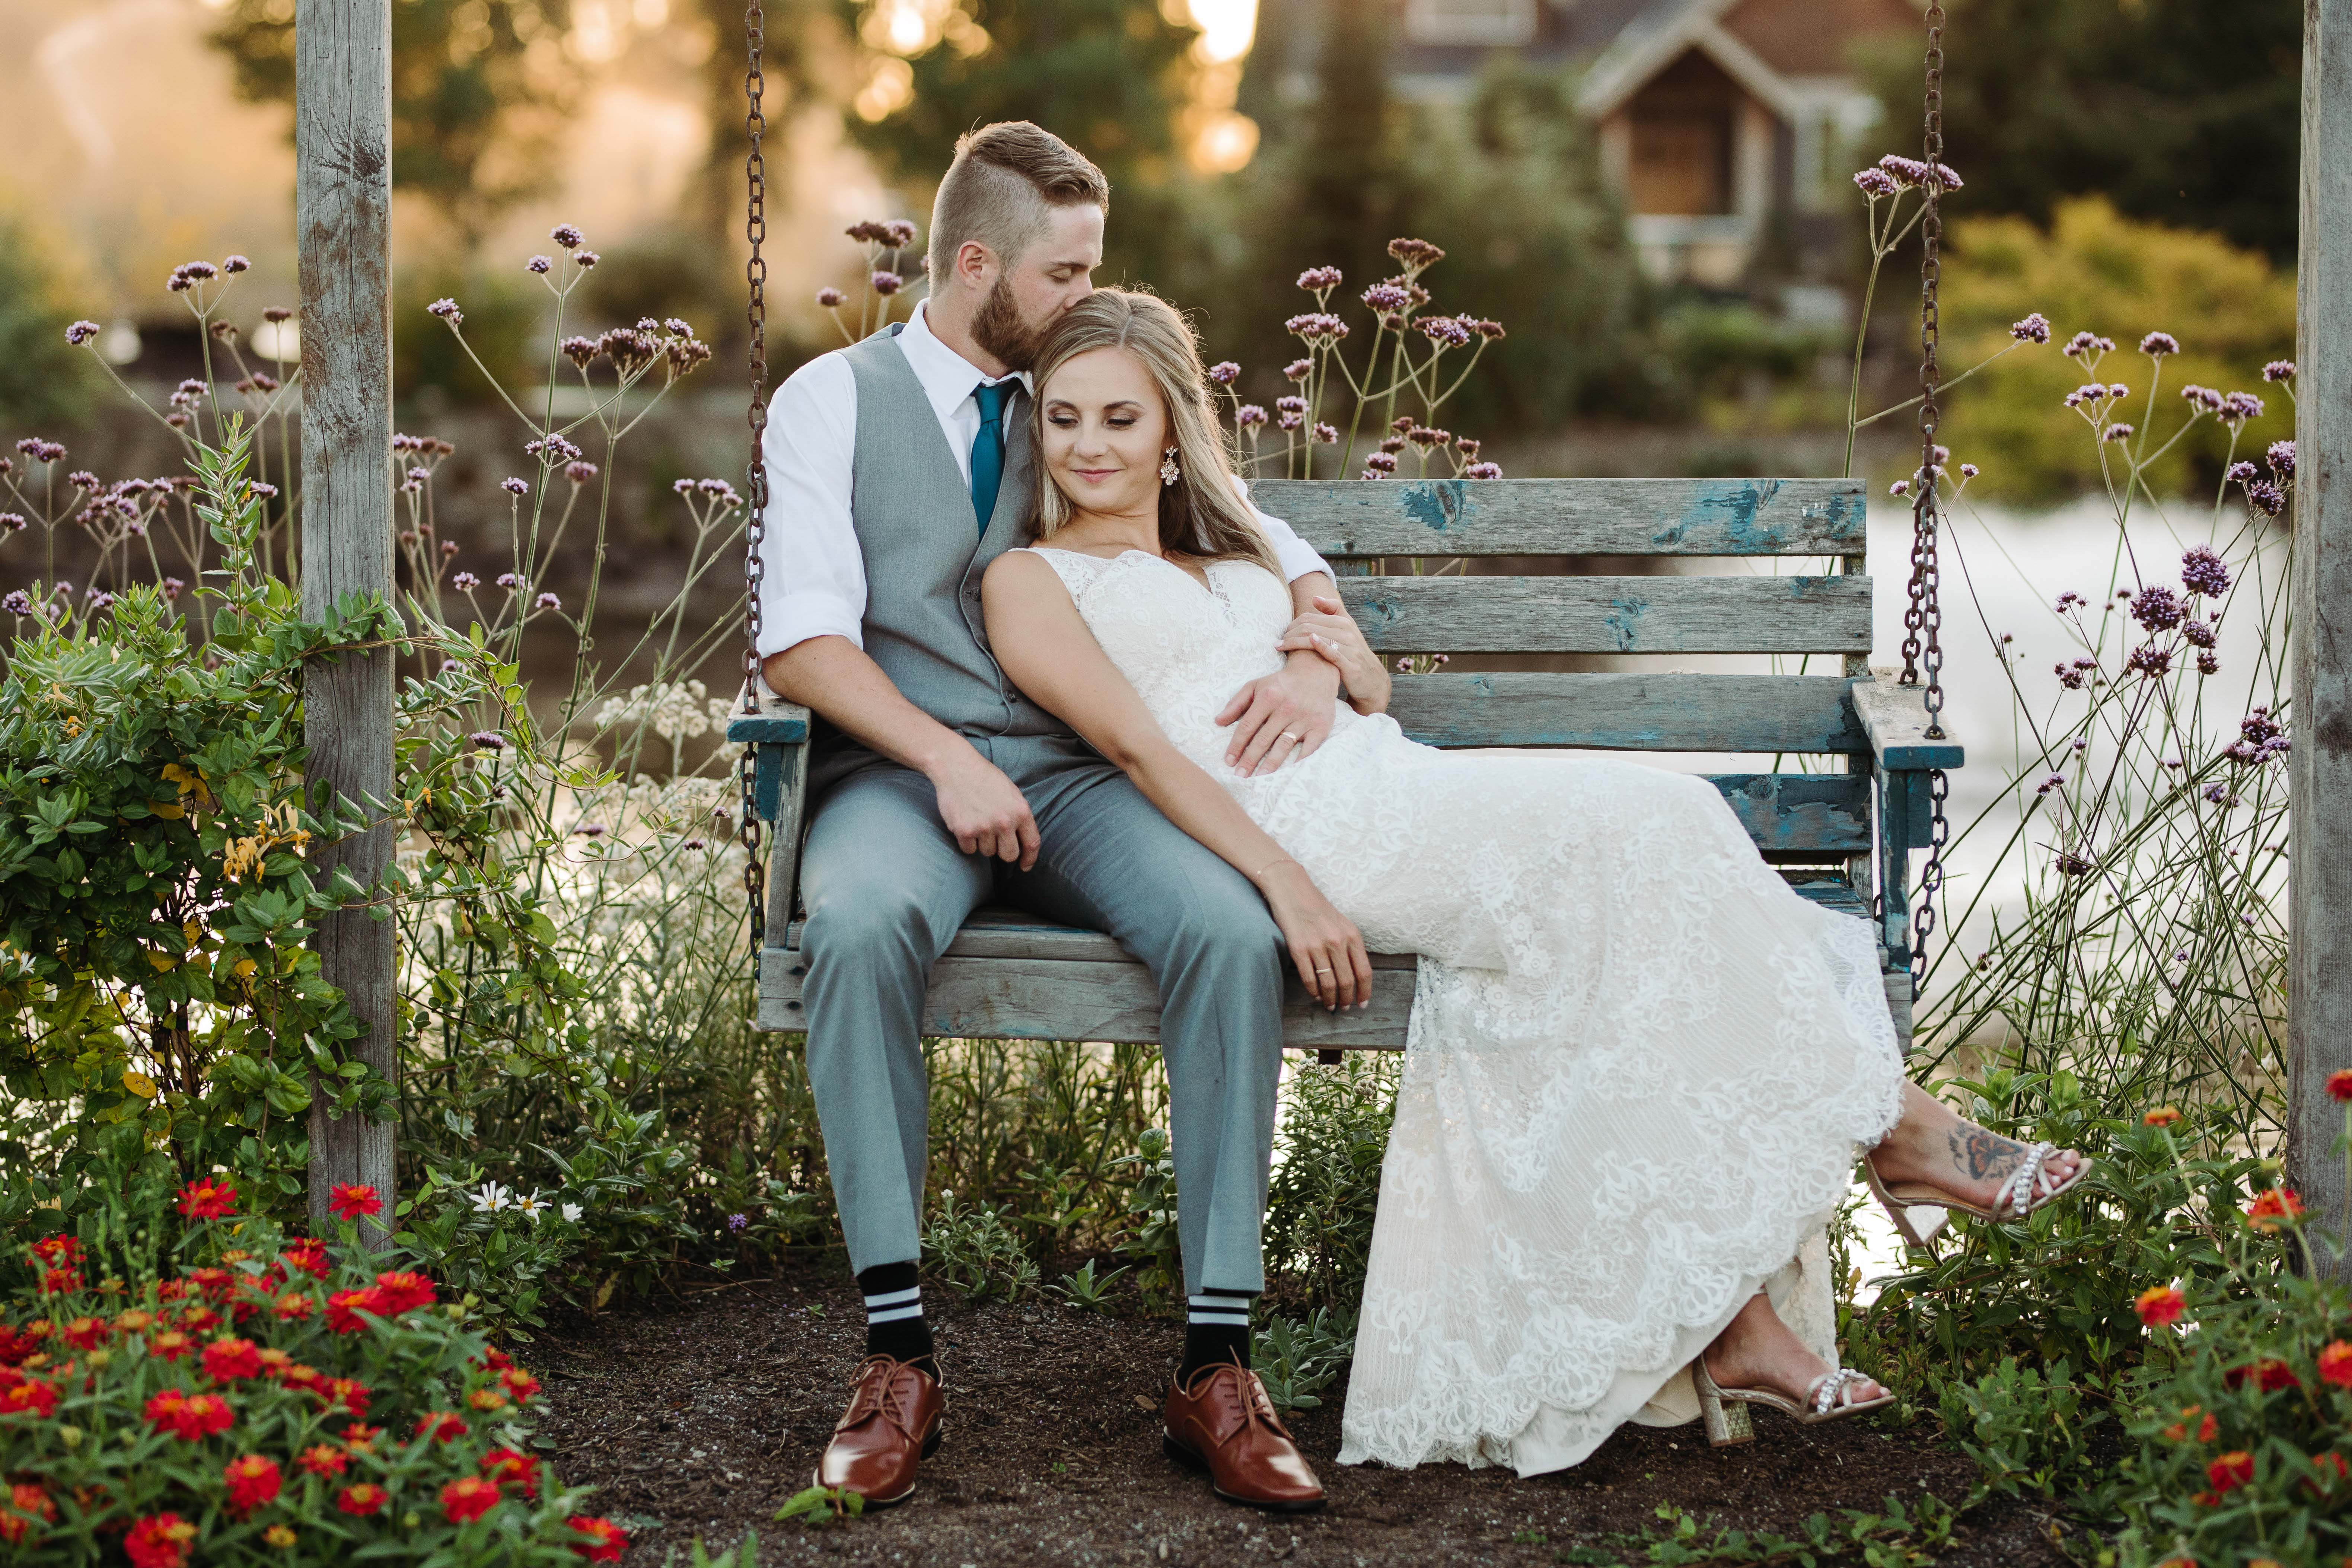 Bride and groom chilling on a swing - photo by Cameron Zegers Photography